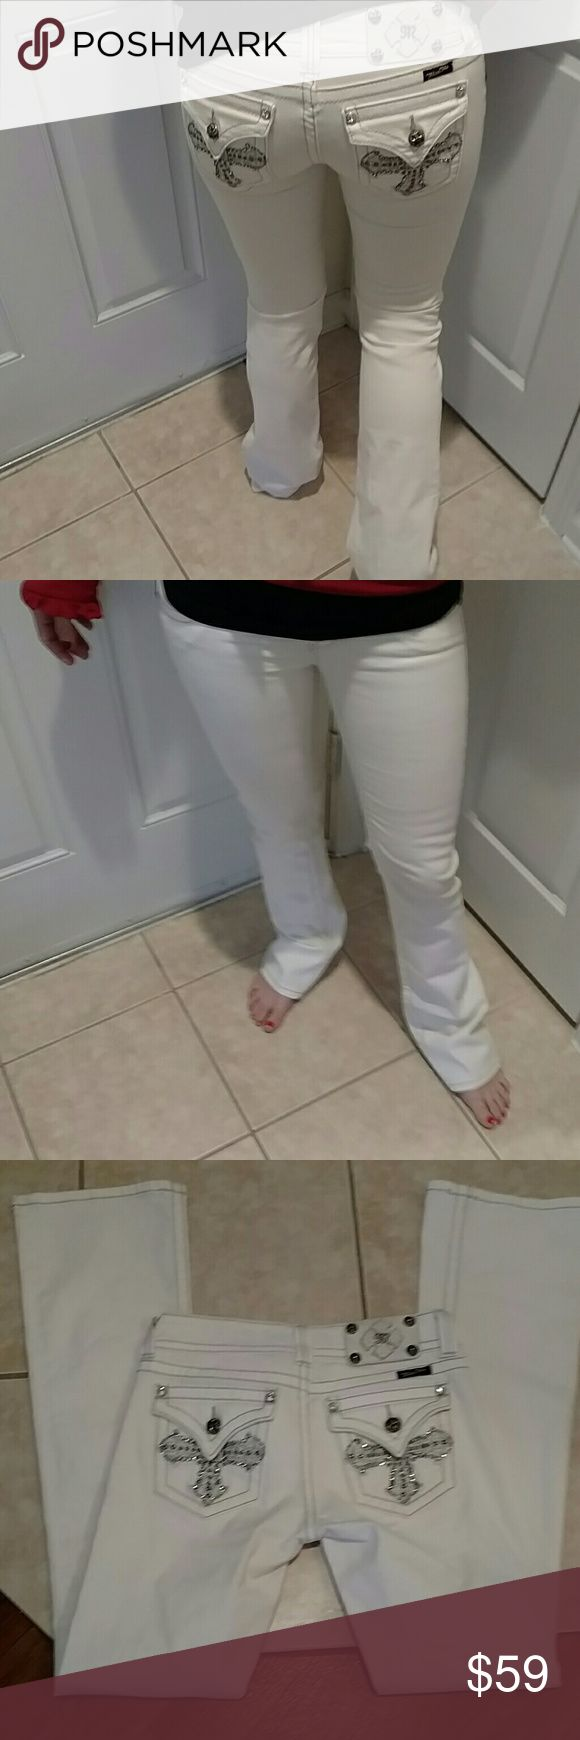 Miss me jeans Beautiful off white miss me jeans with blinged out crosses on the back. Inseam is 32 inches and waist flat measures 14.75 inches. Rise is 7 inches. 98% cotton 2% elastan Miss Me Jeans Boot Cut